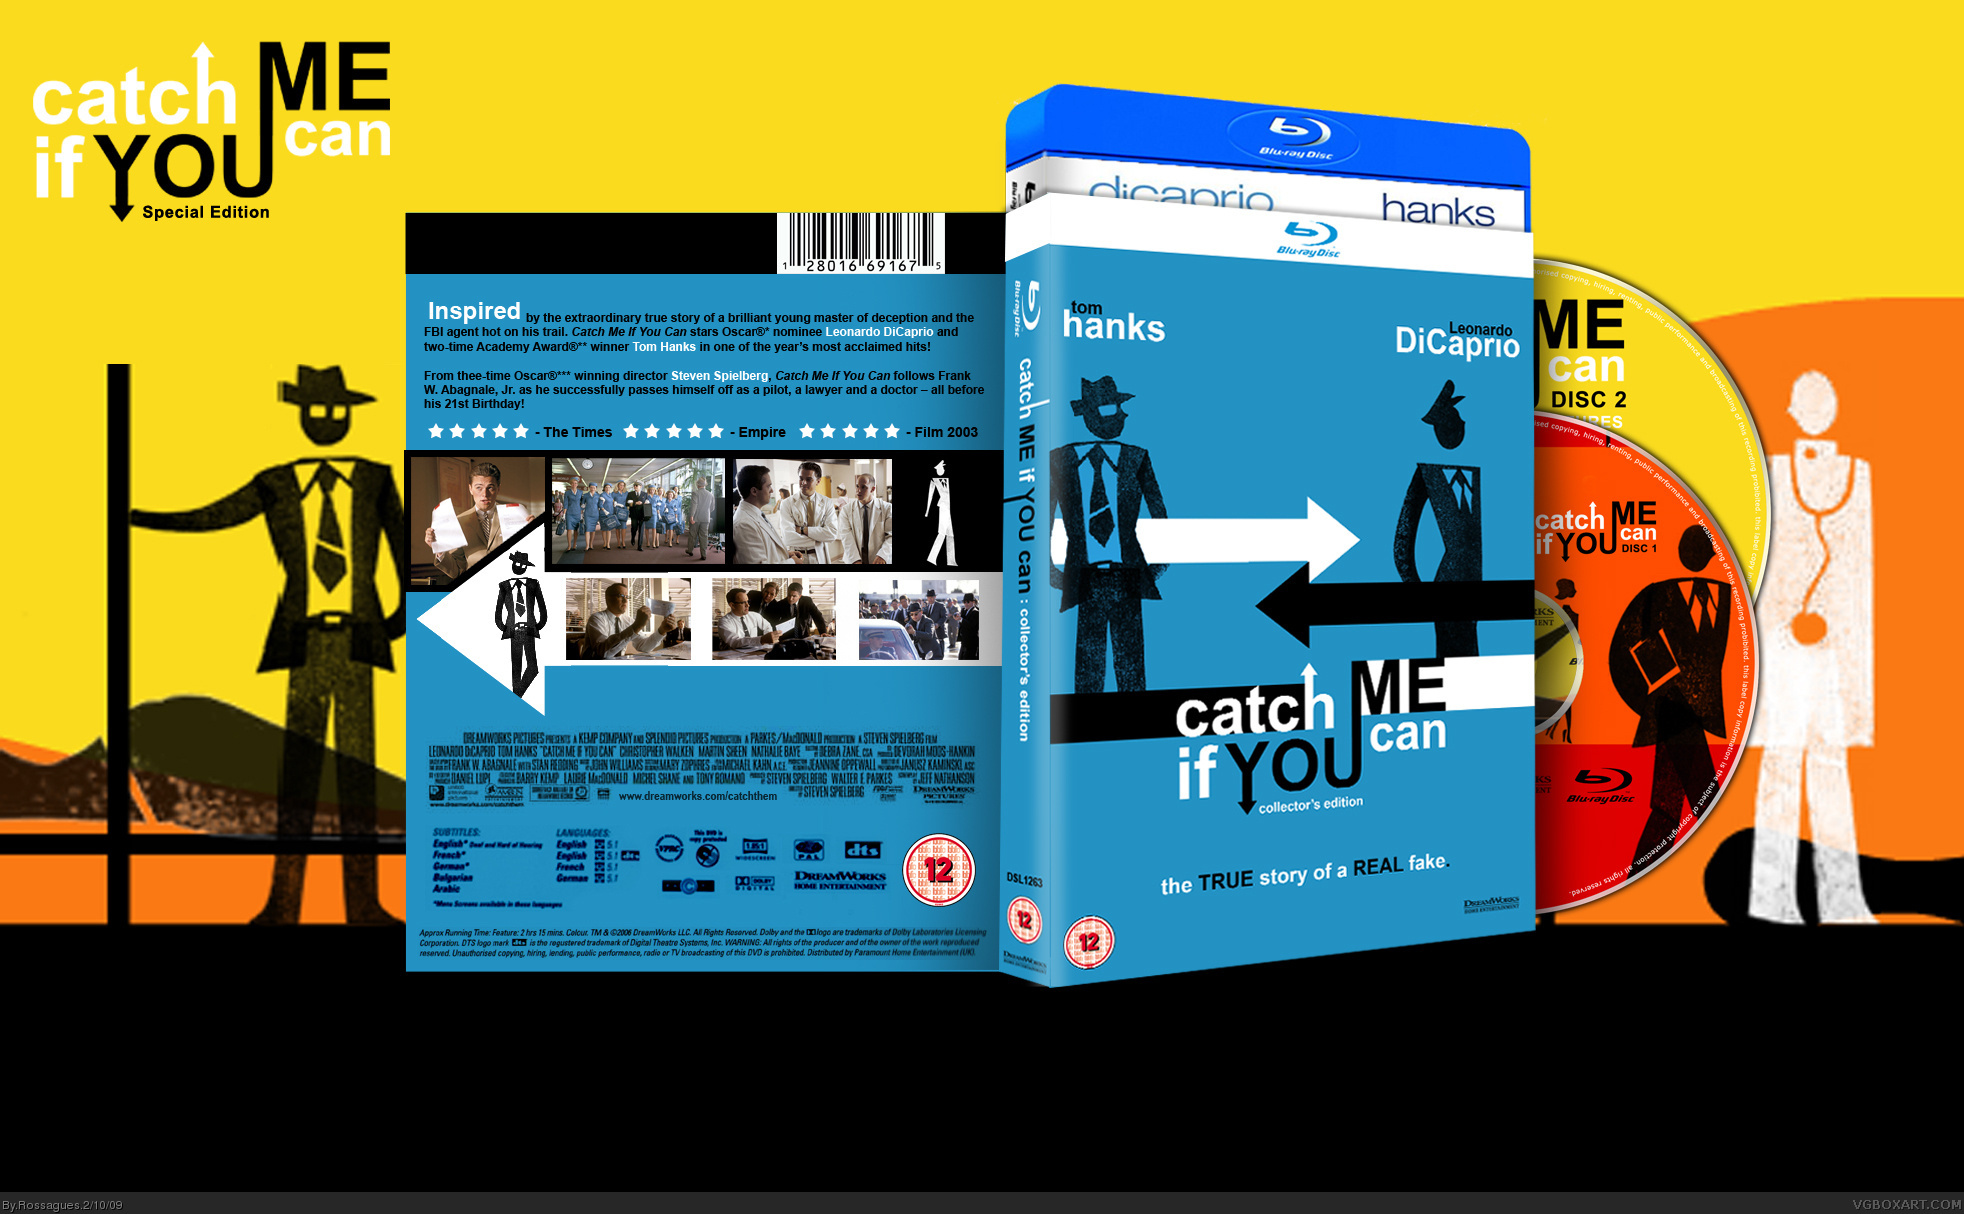 Catch Me If You Can Full Movie Download Crosspdf S Blog